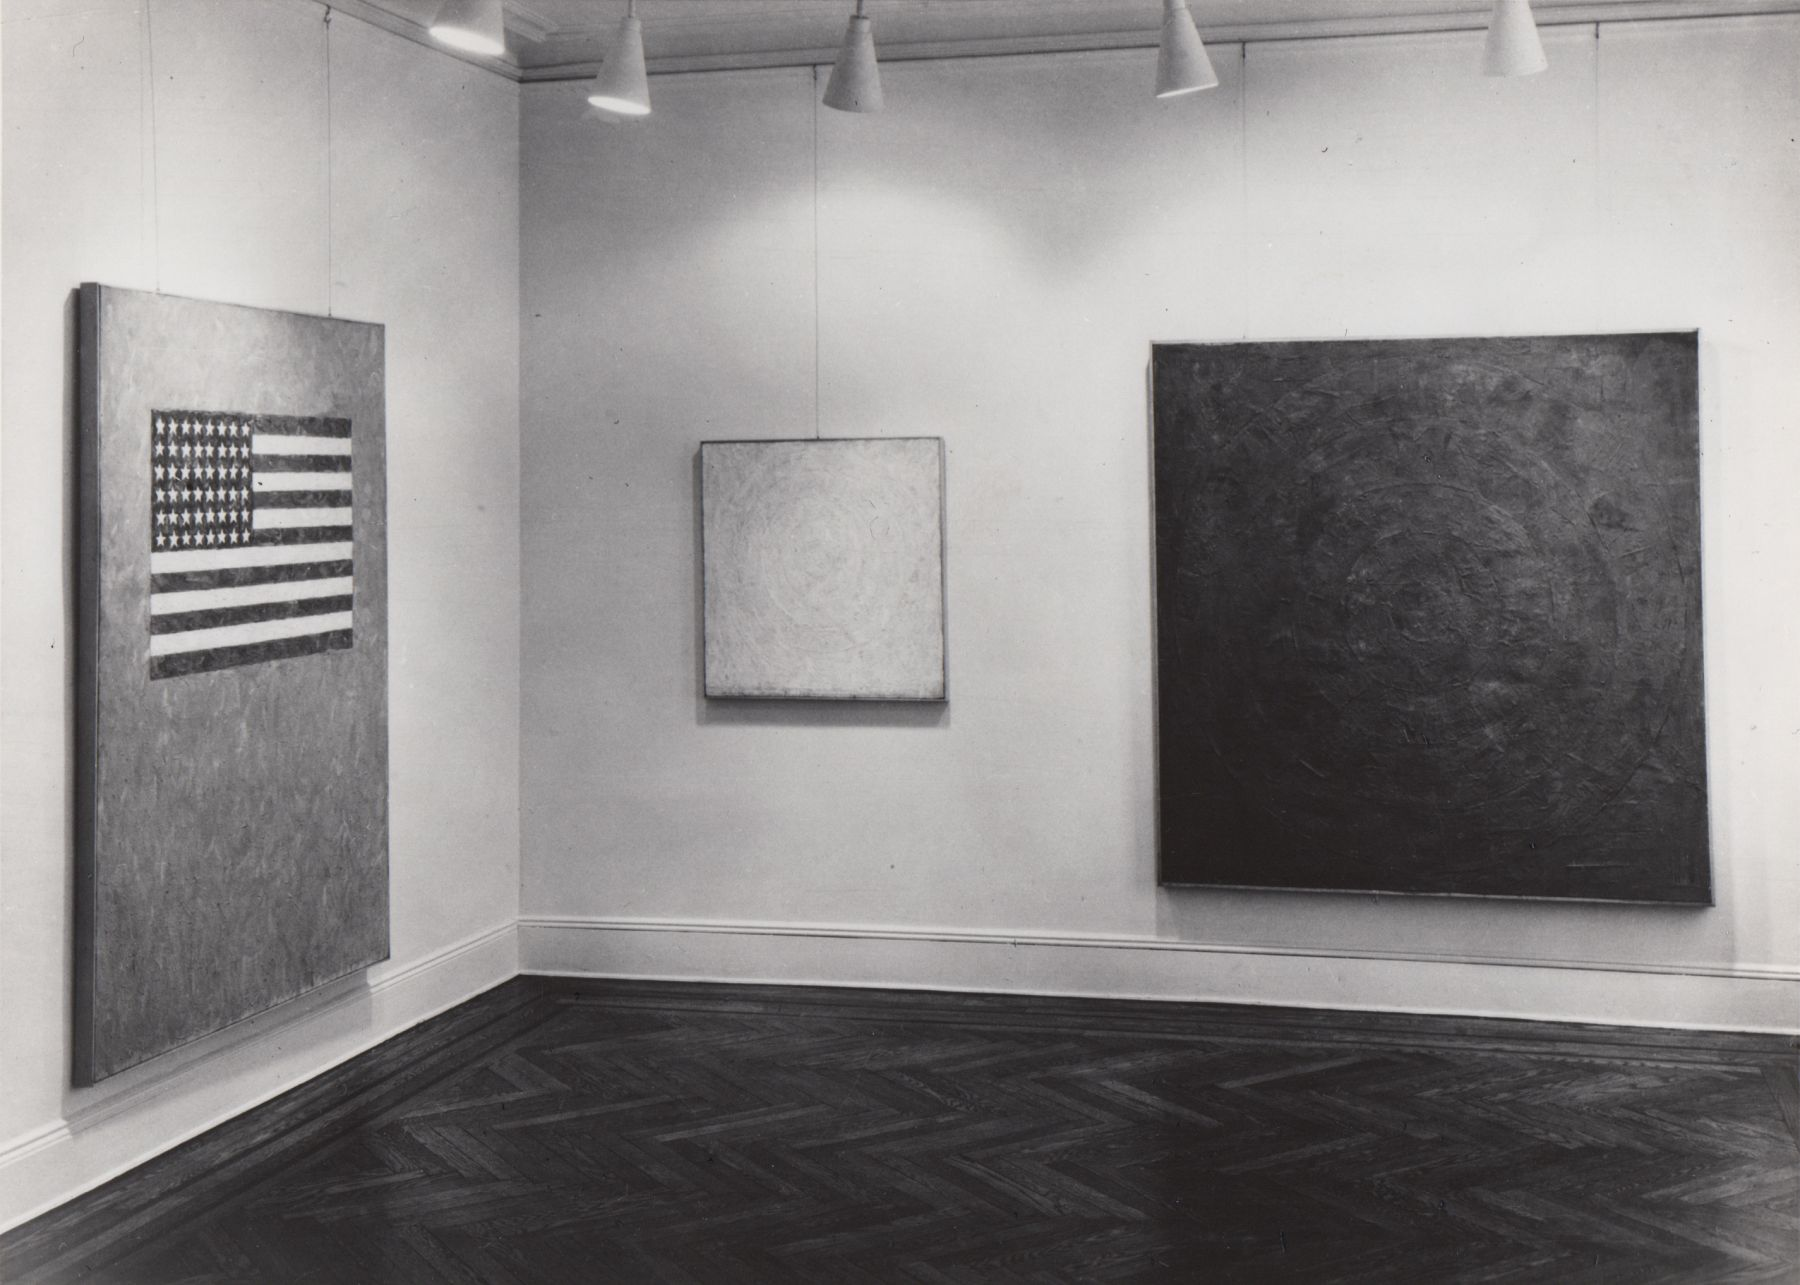 Installation view, Jasper Johns, 4 EAST 77